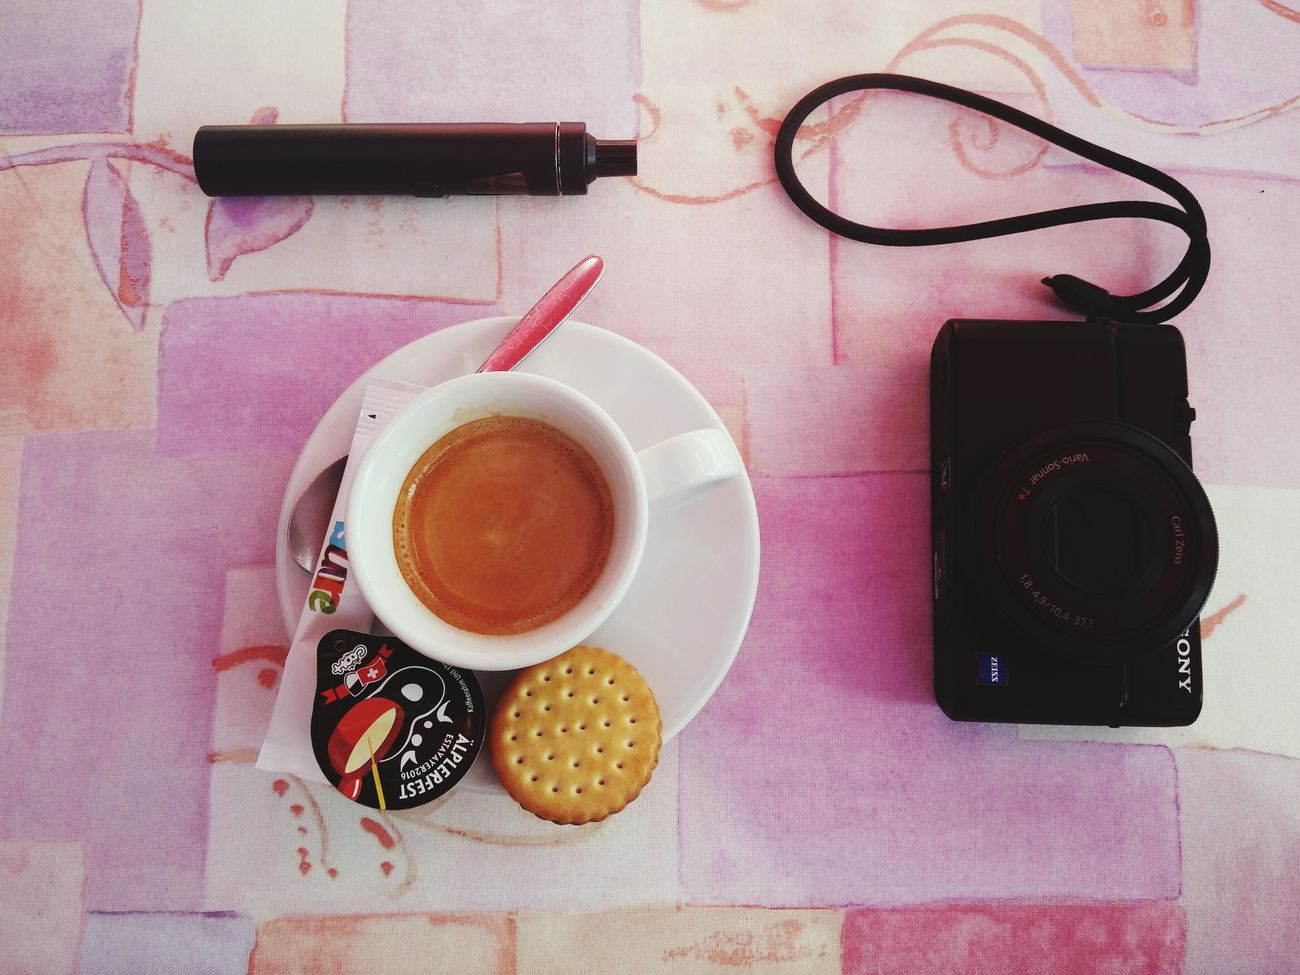 Dependence Drink Coffee Cup Coffee - Drink Food And Drink Freshness Breakfast Coffee High Angle View Directly Above Beverage Ecigarette Ecig Rx100 Sony Camera Cup Hot Drink Table Still Life Dependence Refreshment